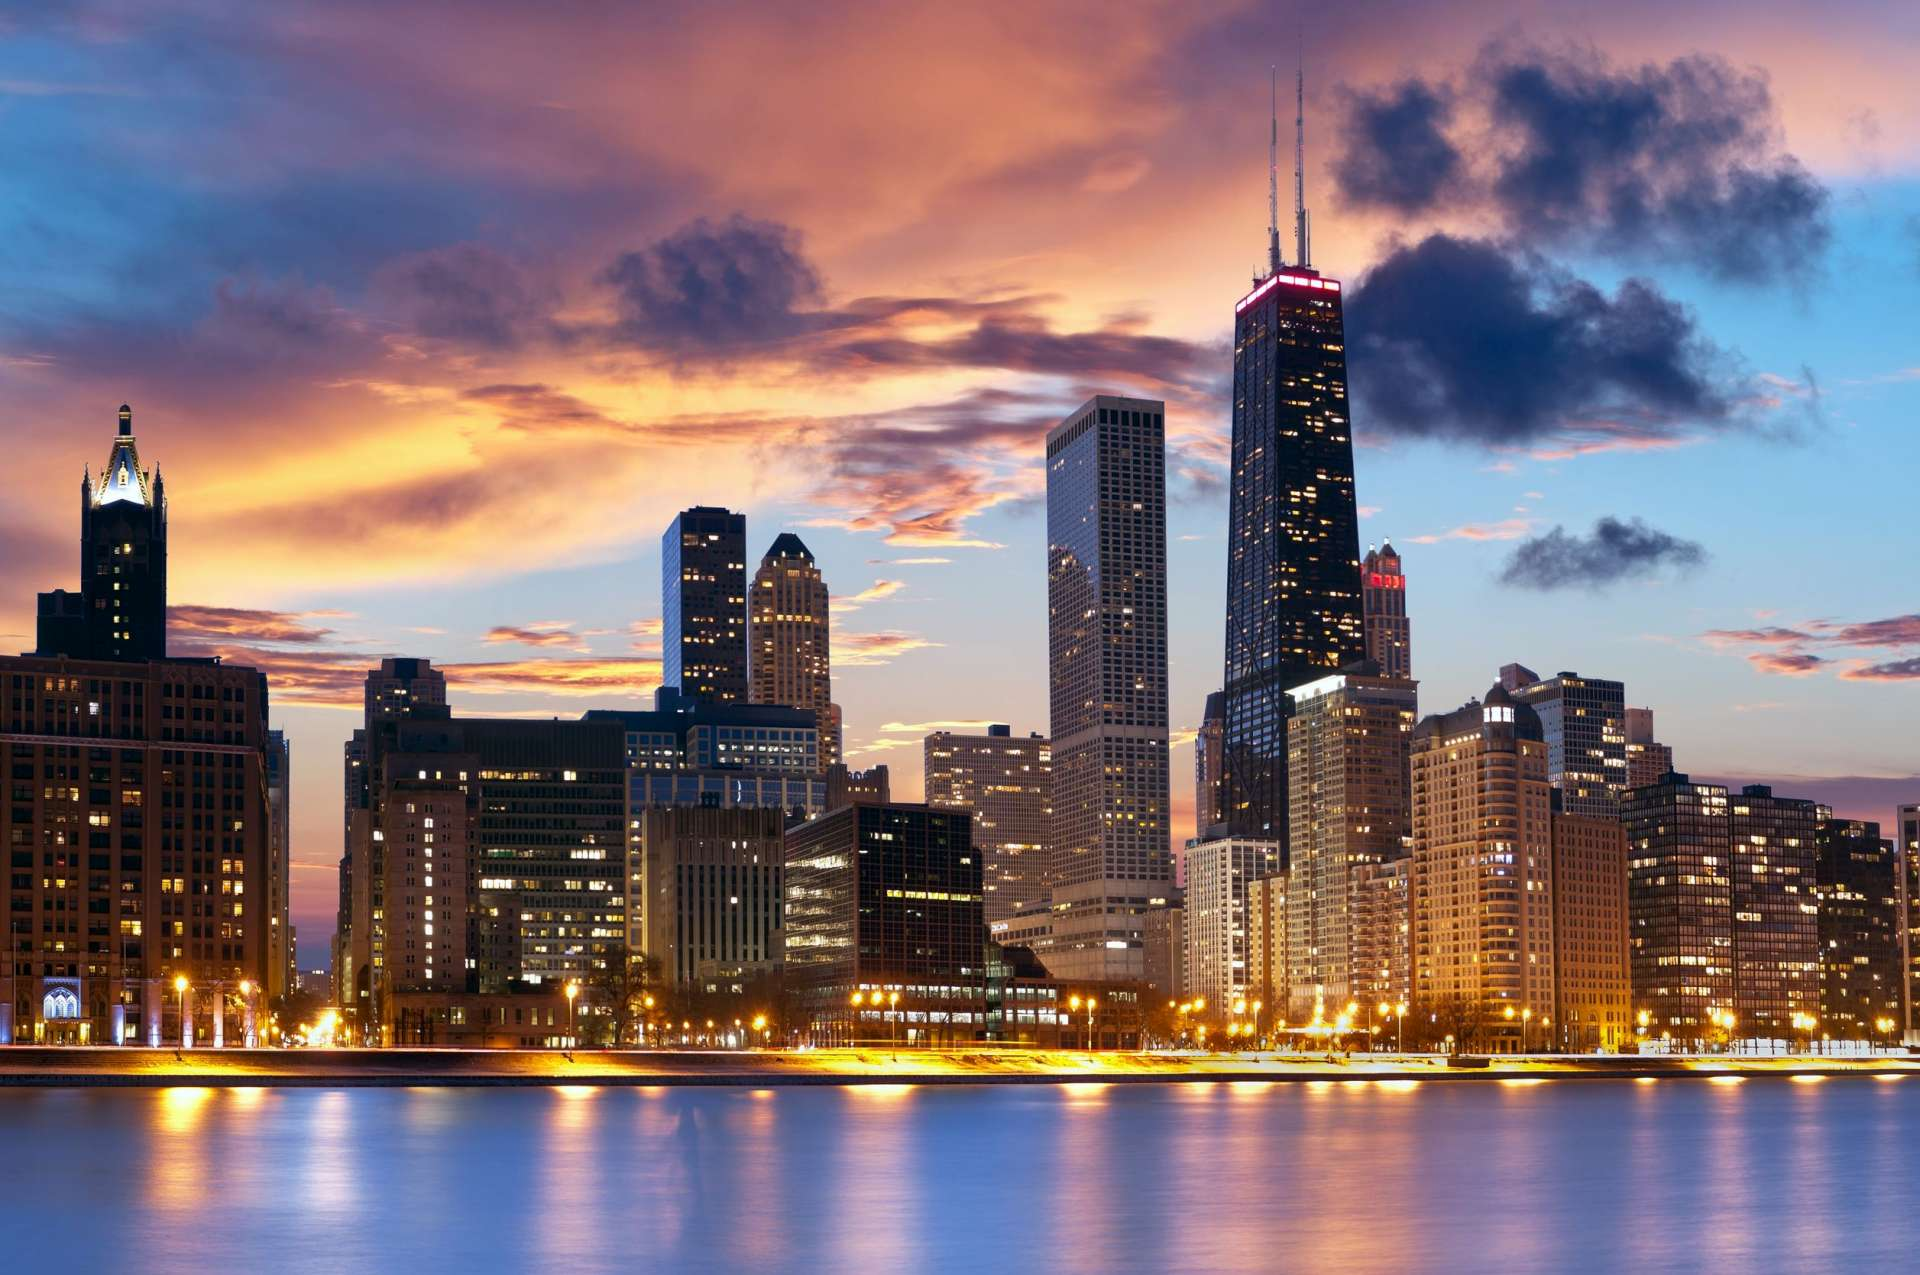 City of Chicago HD Wallpaper